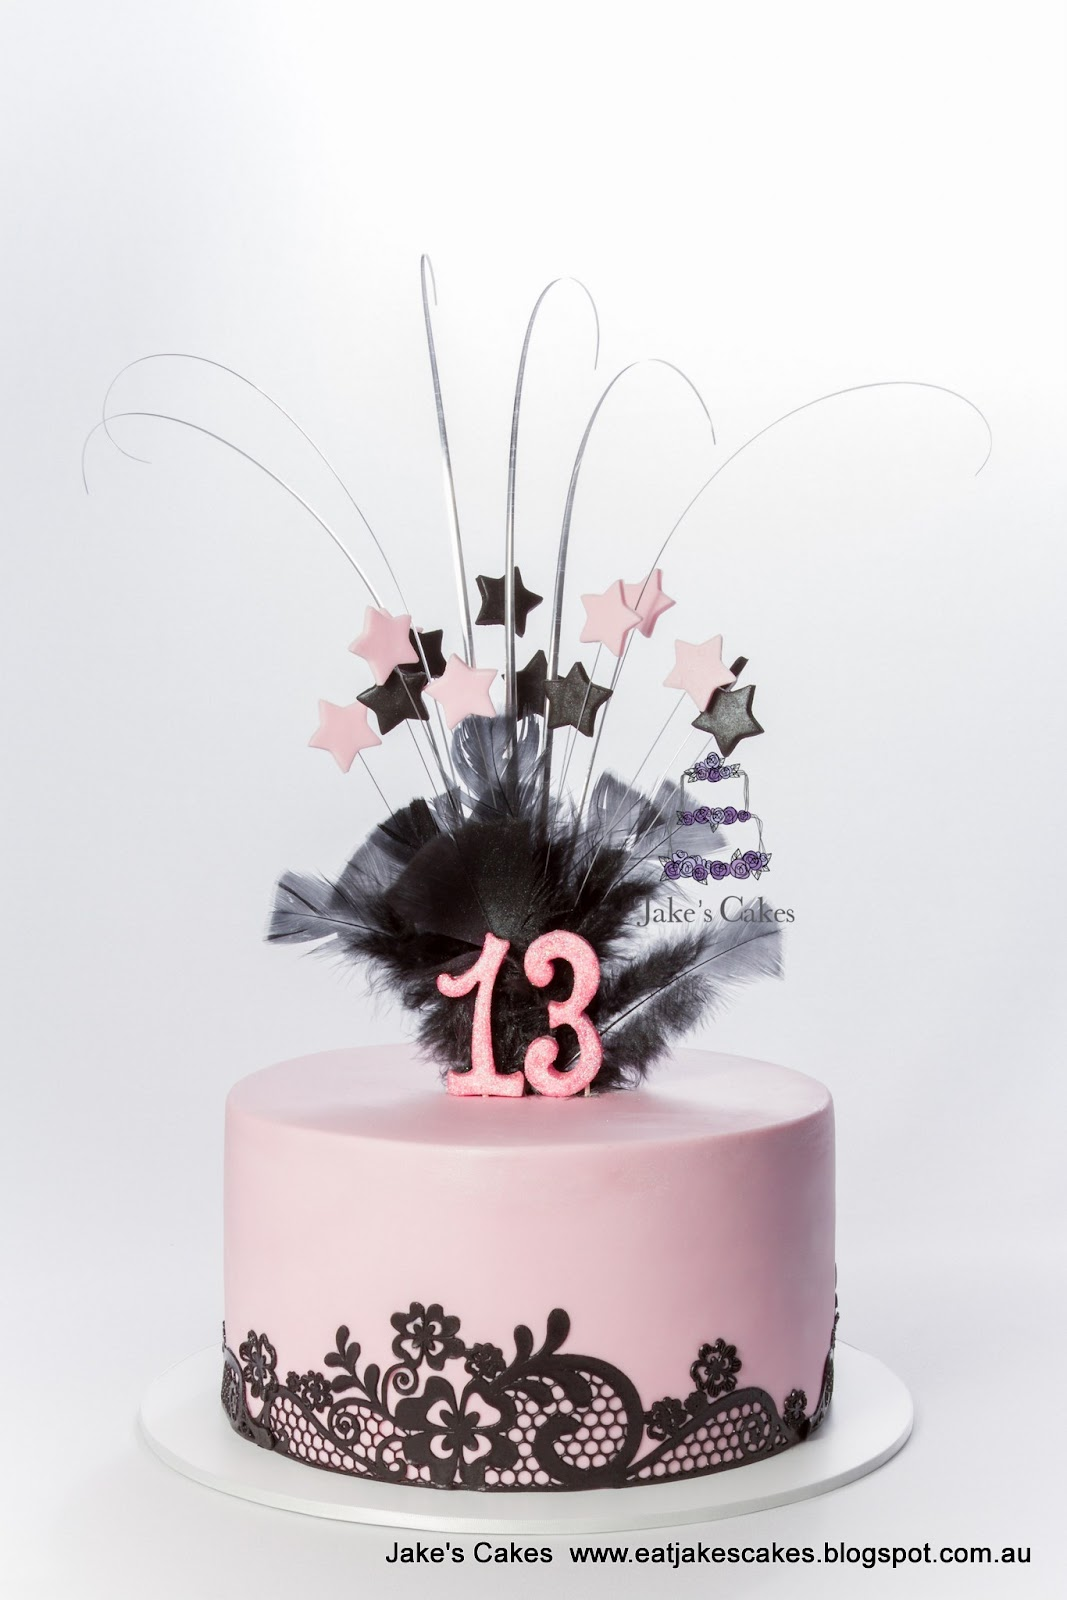 Jakes Cakes Pink And Black Lace 13th Birthday Cake